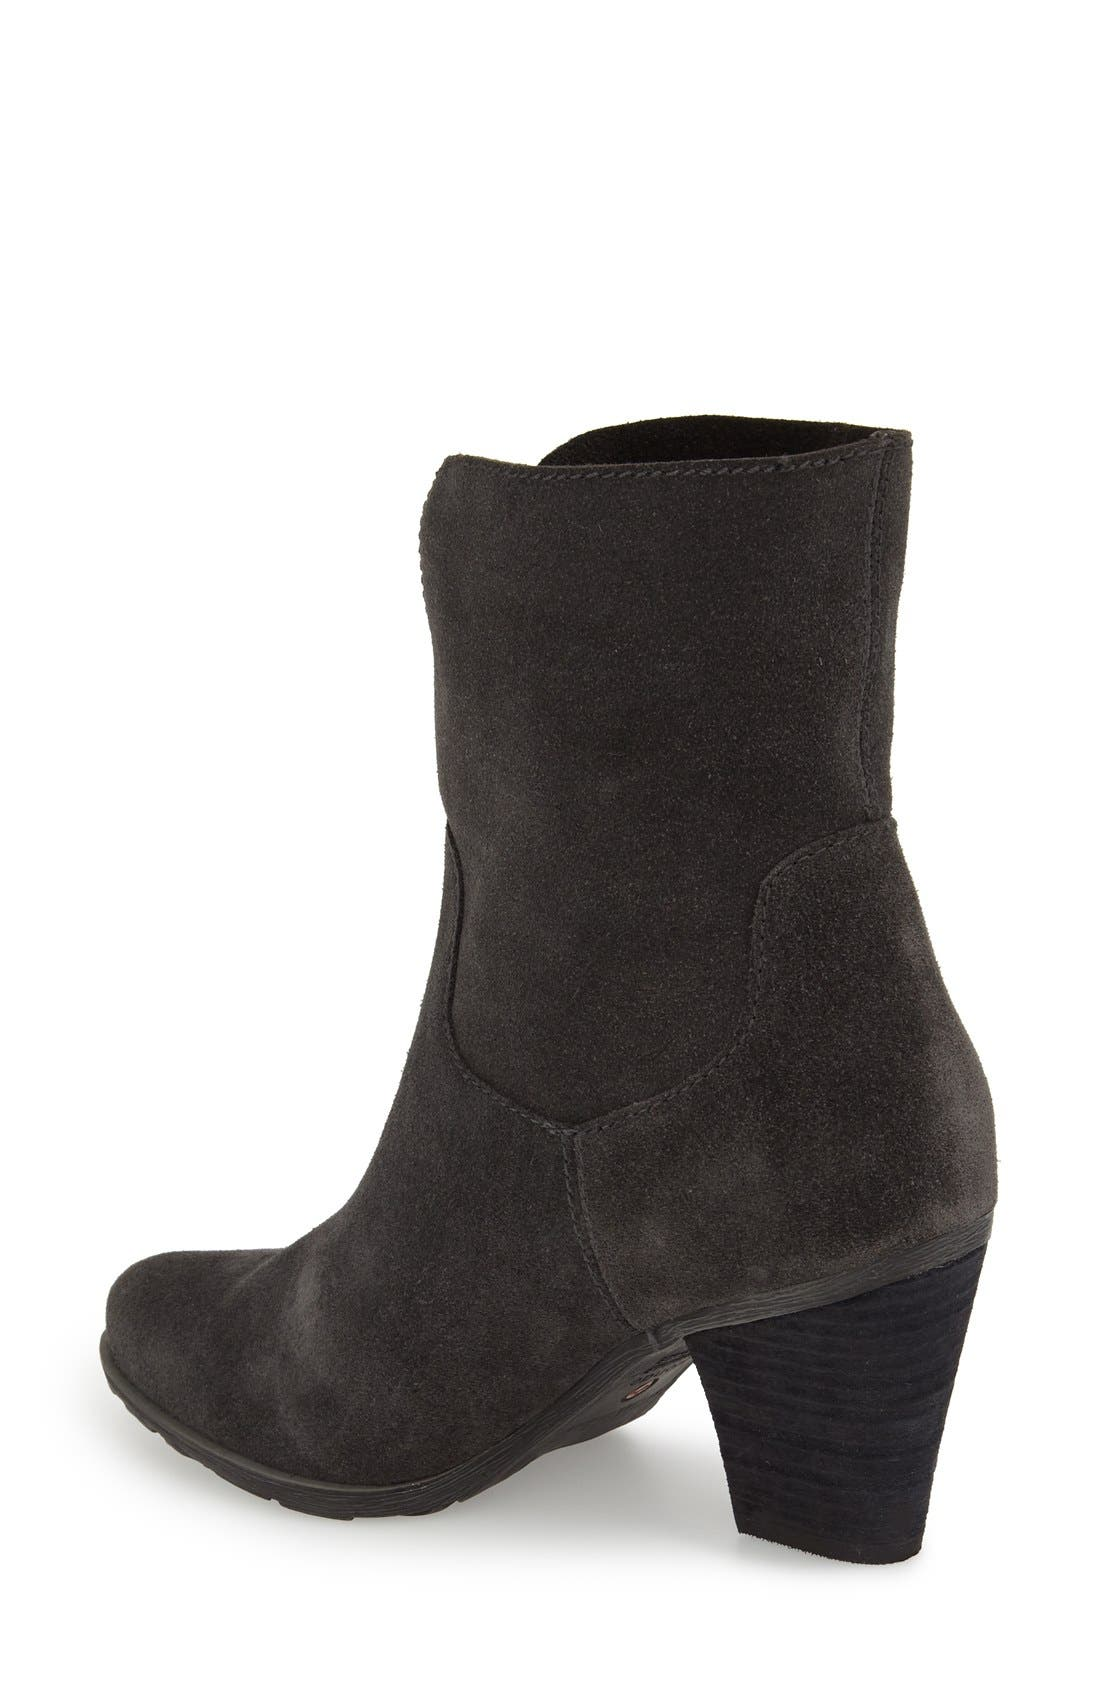 Fay Waterproof Ankle Boot,                             Alternate thumbnail 2, color,                             020